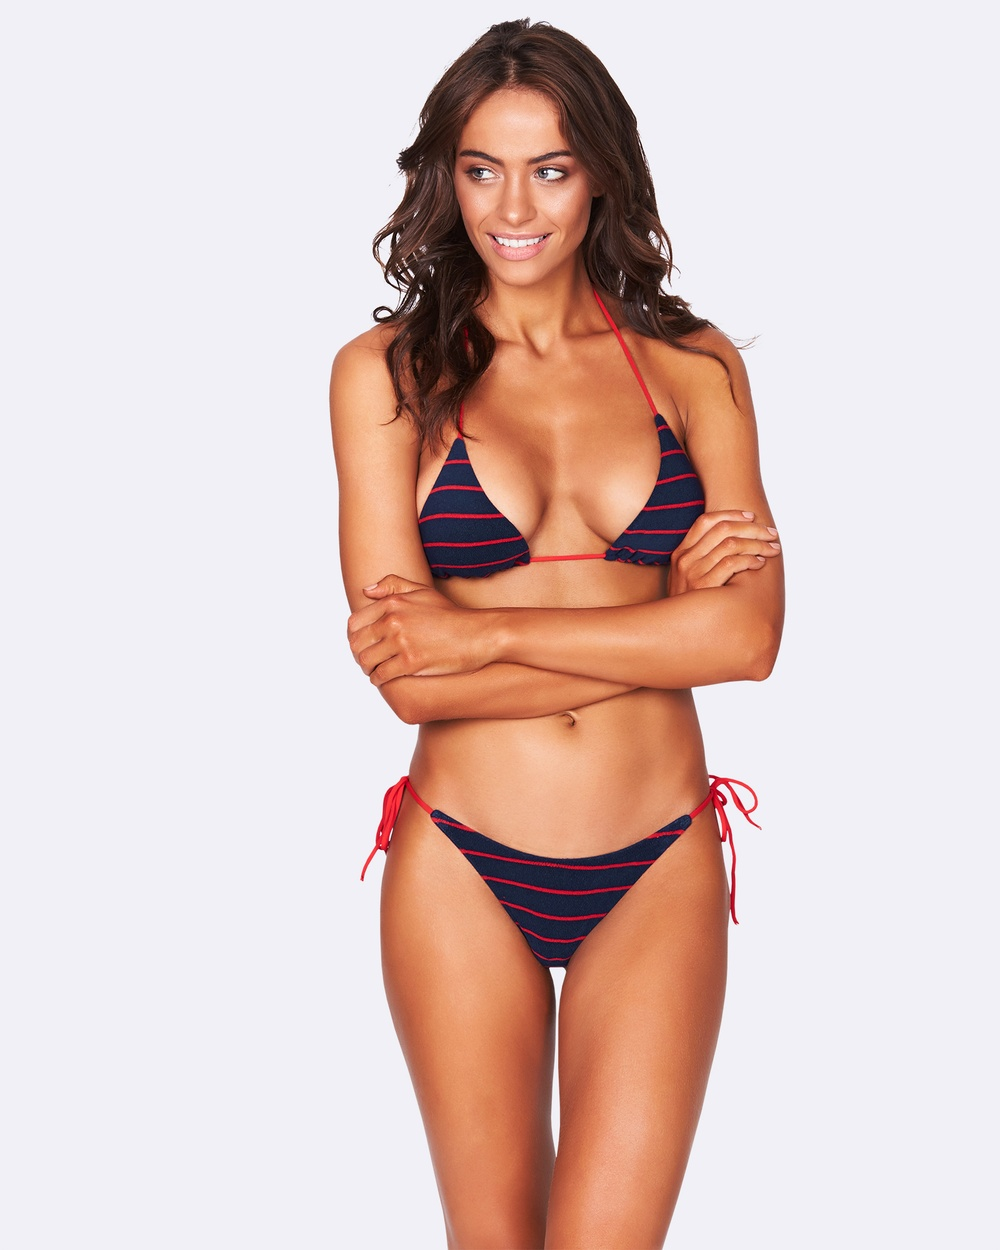 Bond-Eye Swimwear Rebel Ties Terry Triangle Bikini Tops Navy/Red Rebel Ties Terry Triangle